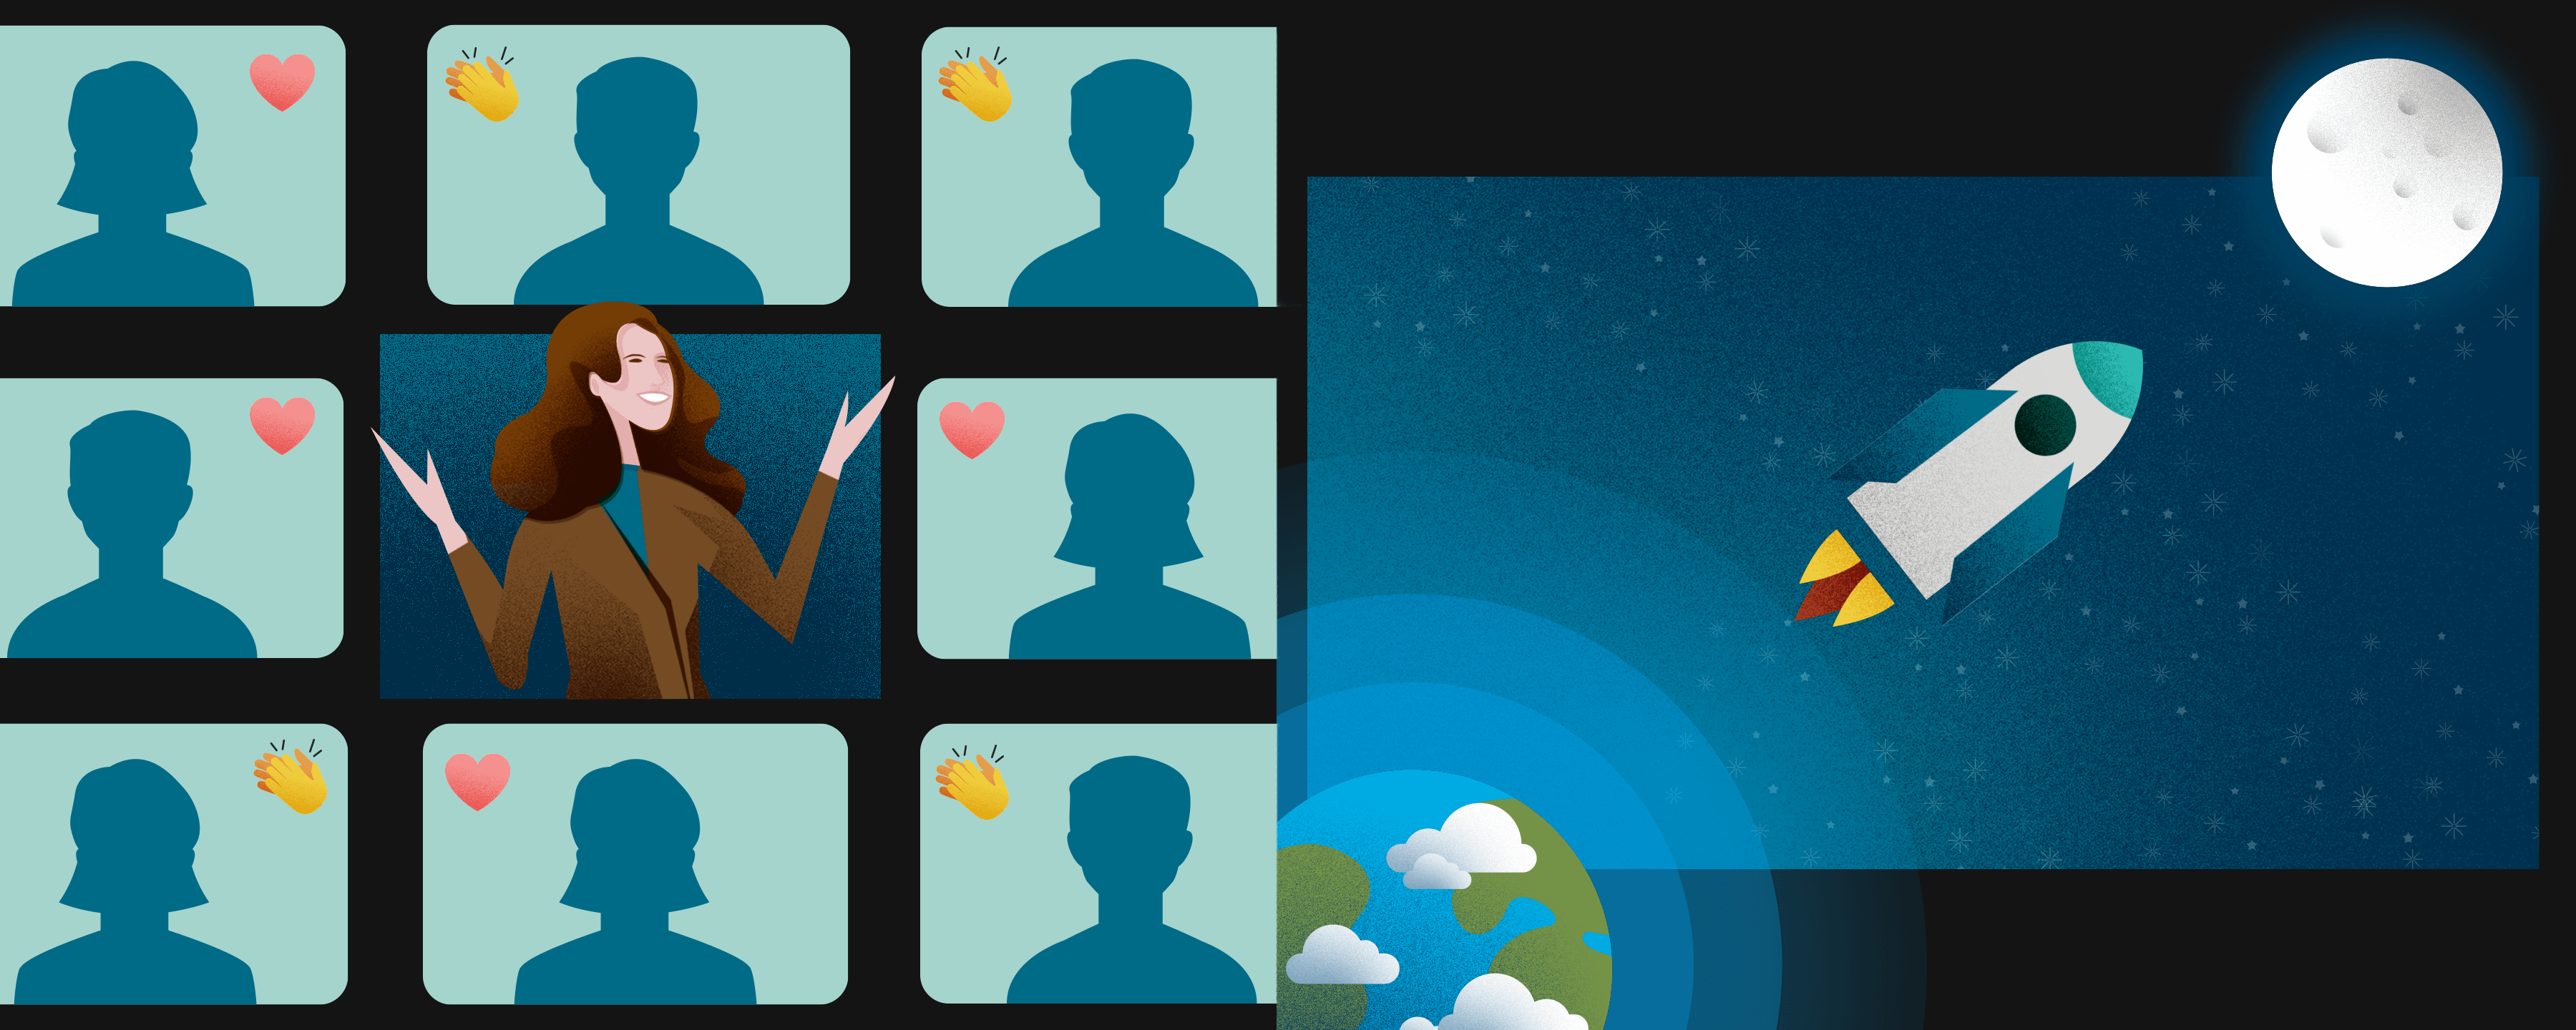 Woman engaging with a virtual audience, displaying a rocket leaving the earth and heading to the moon